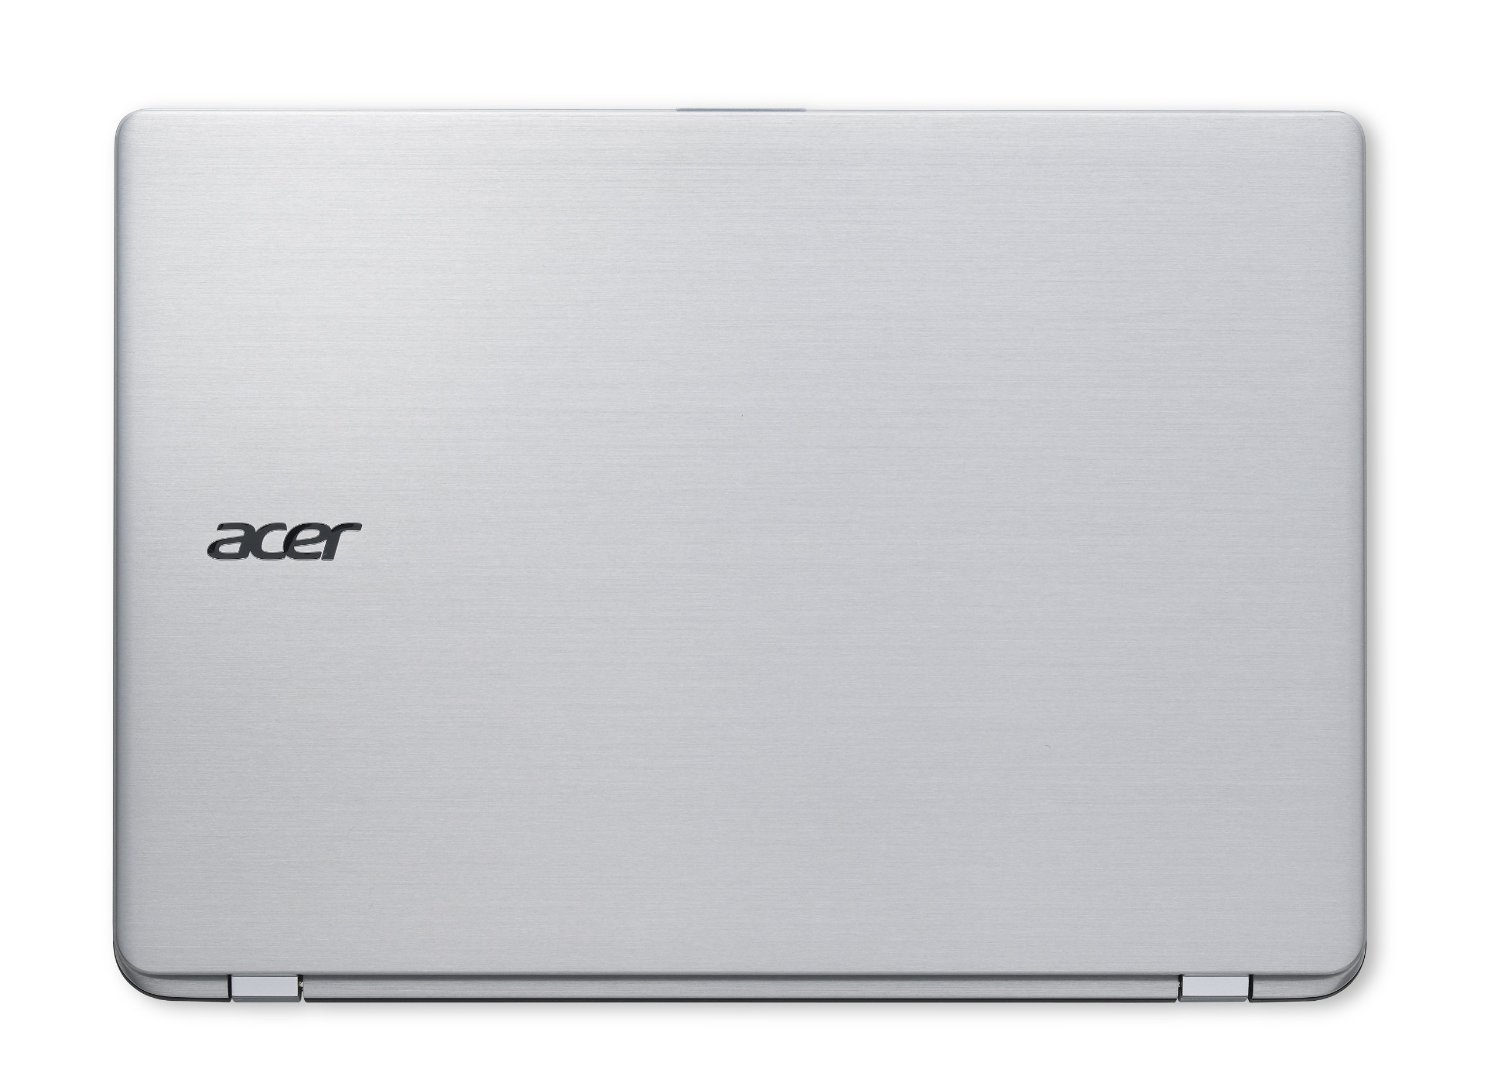 Acer Aspire V5-122P Laptop Drivers Download Free